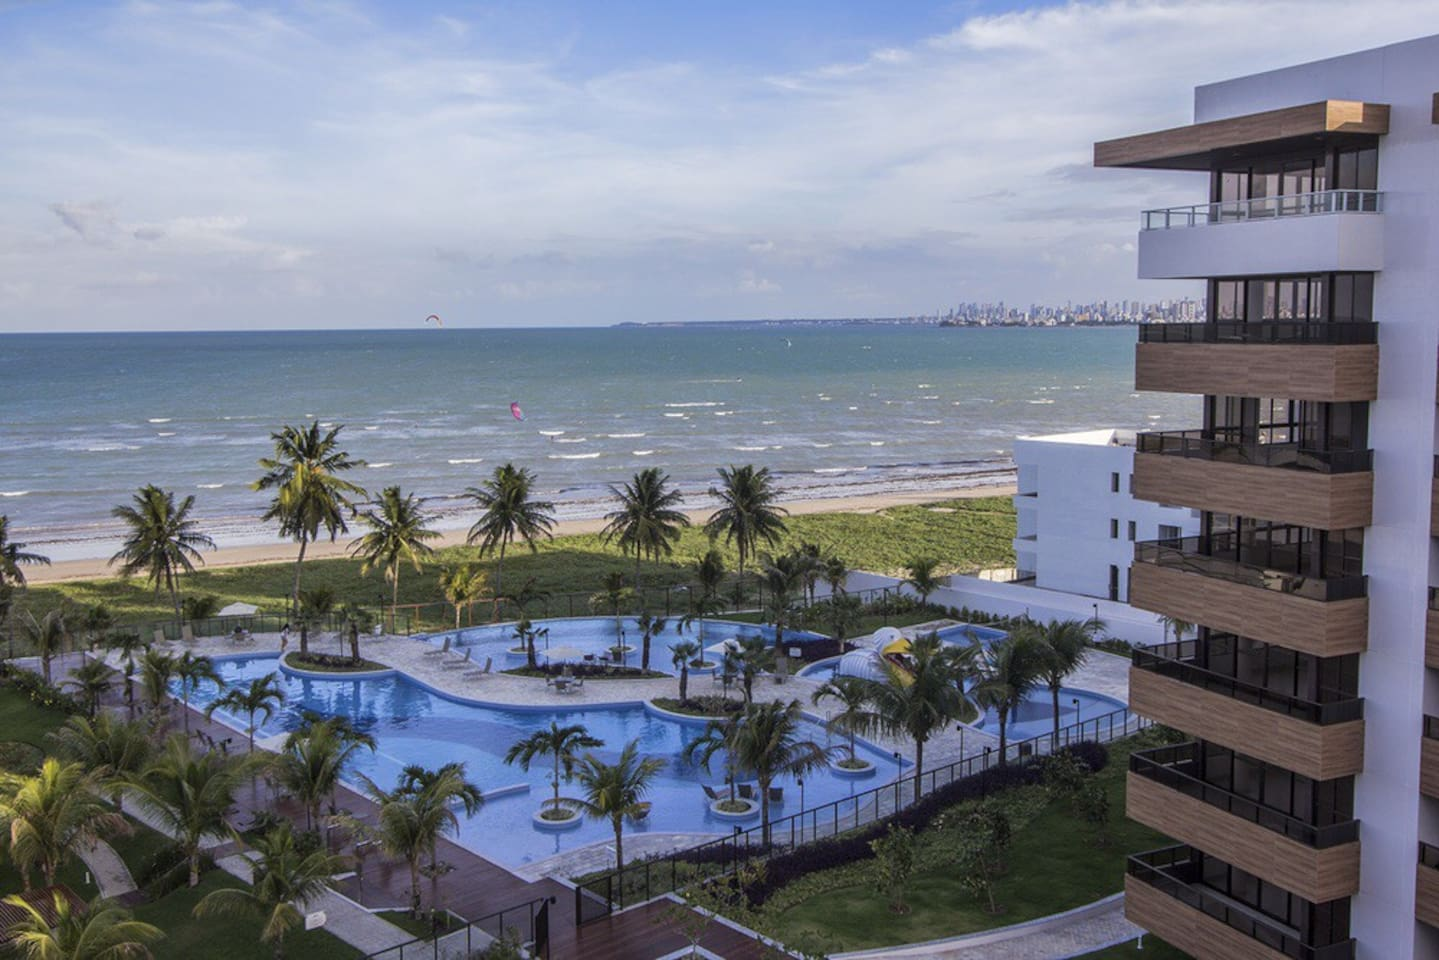 right by the Atlantic Ocean in an area that is perfect for windsurfers and bathers